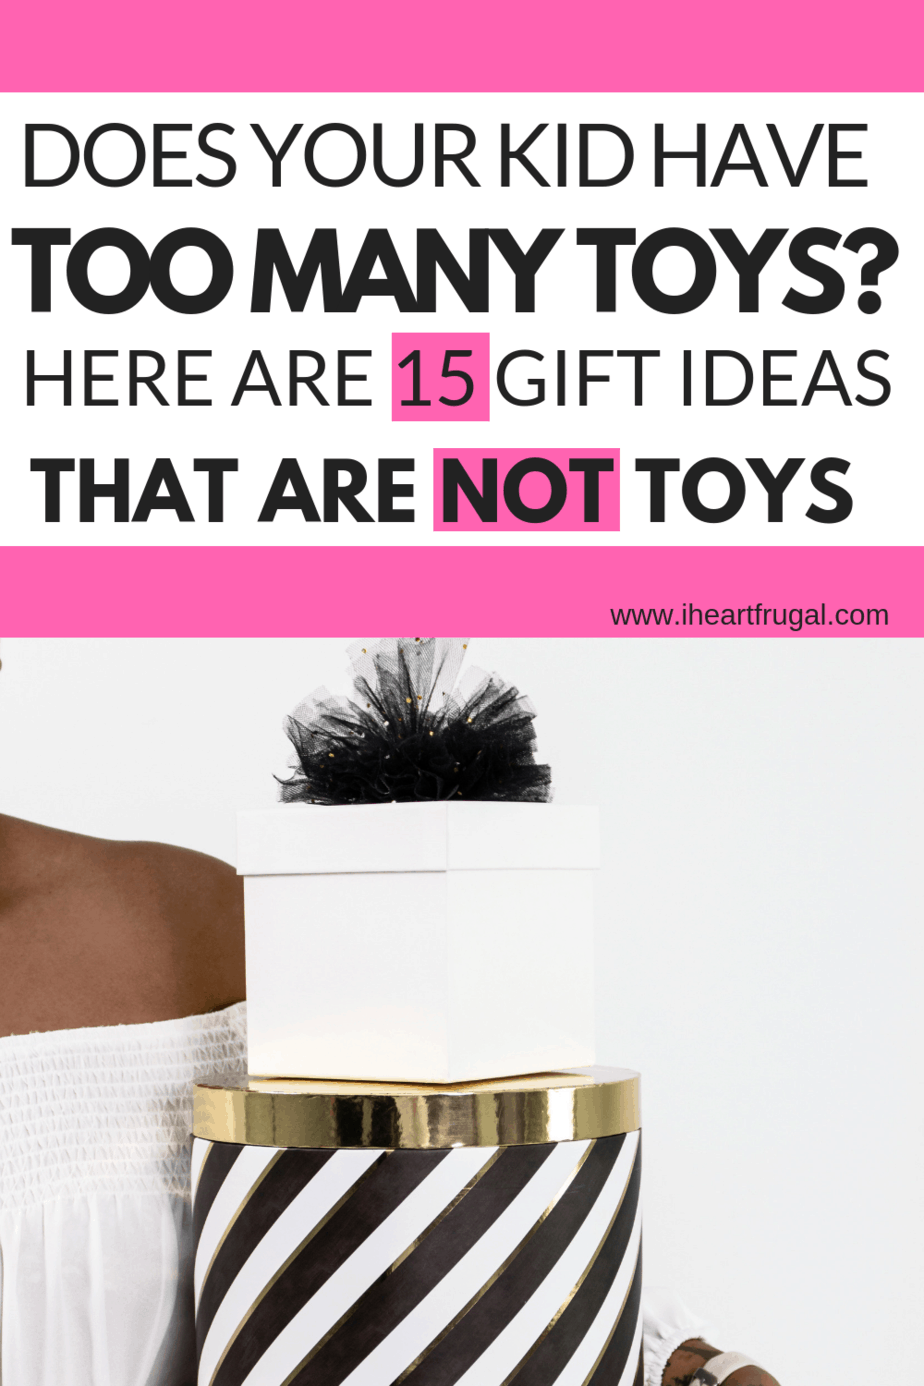 Gift Ideas for Kids That Have too Many Toys